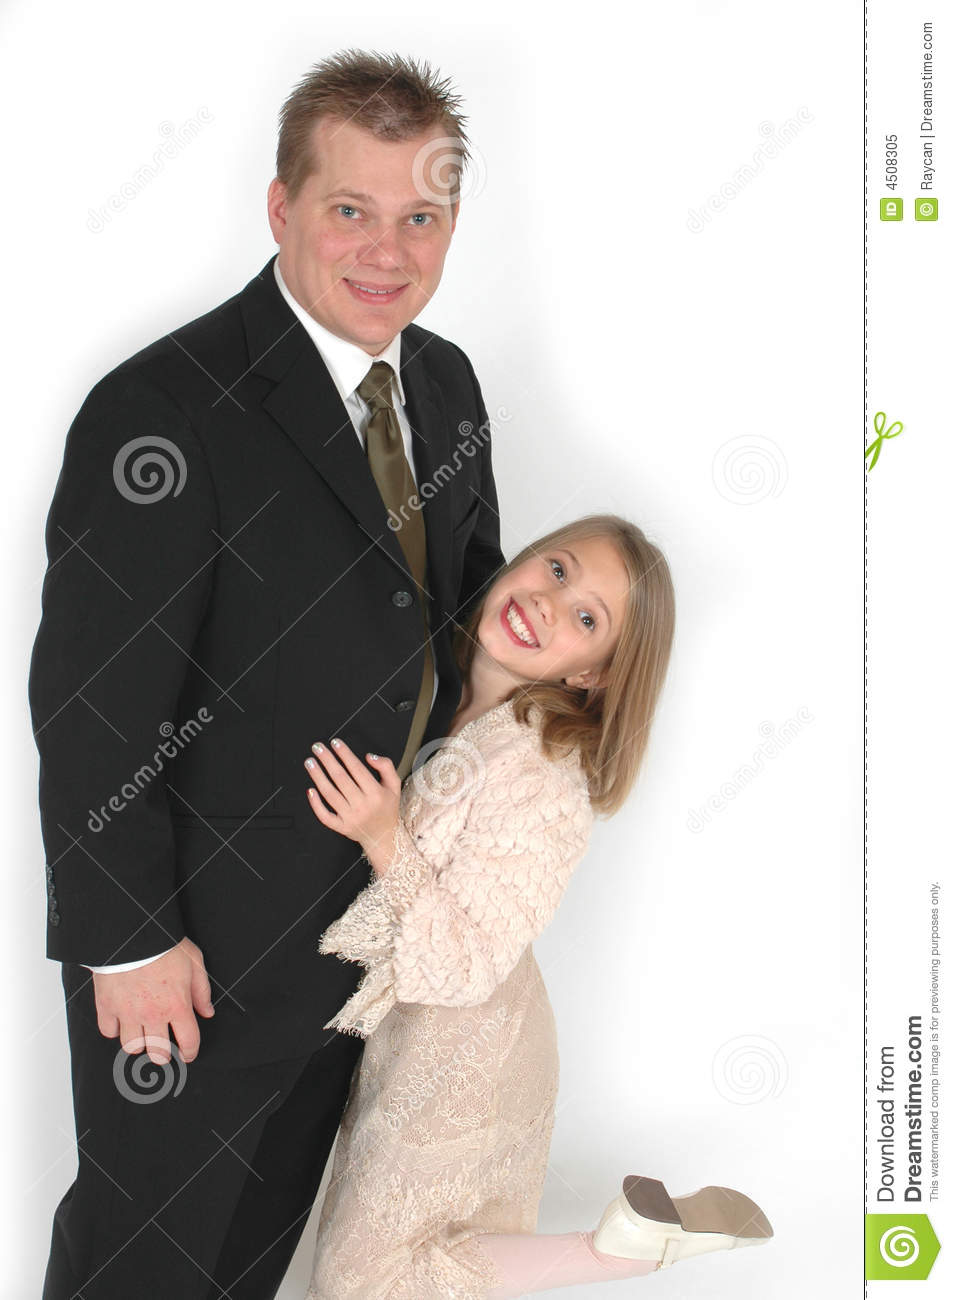 Silly Father and Daughter